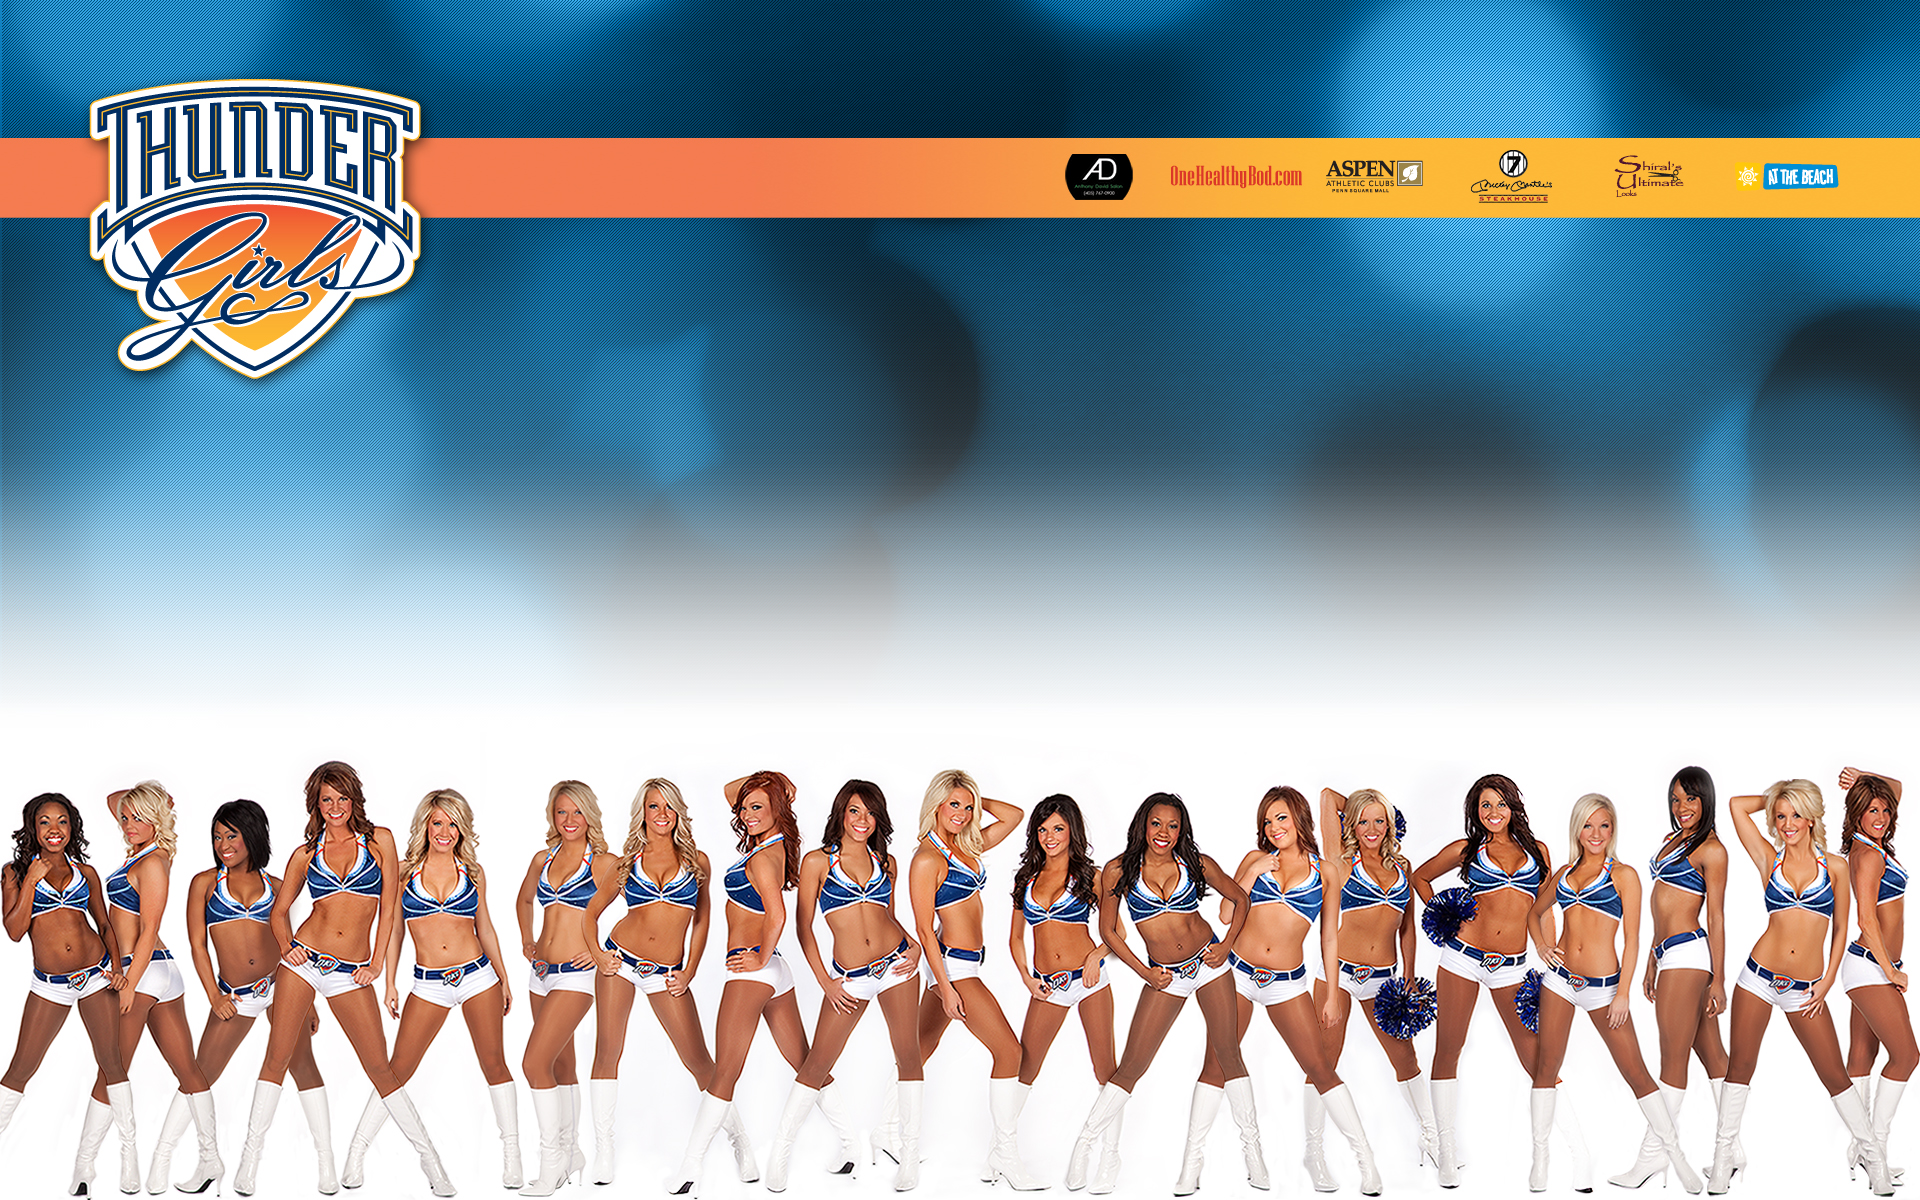 Oklahoma City Thunder Wallpaper 2014 - WallpaperSafari